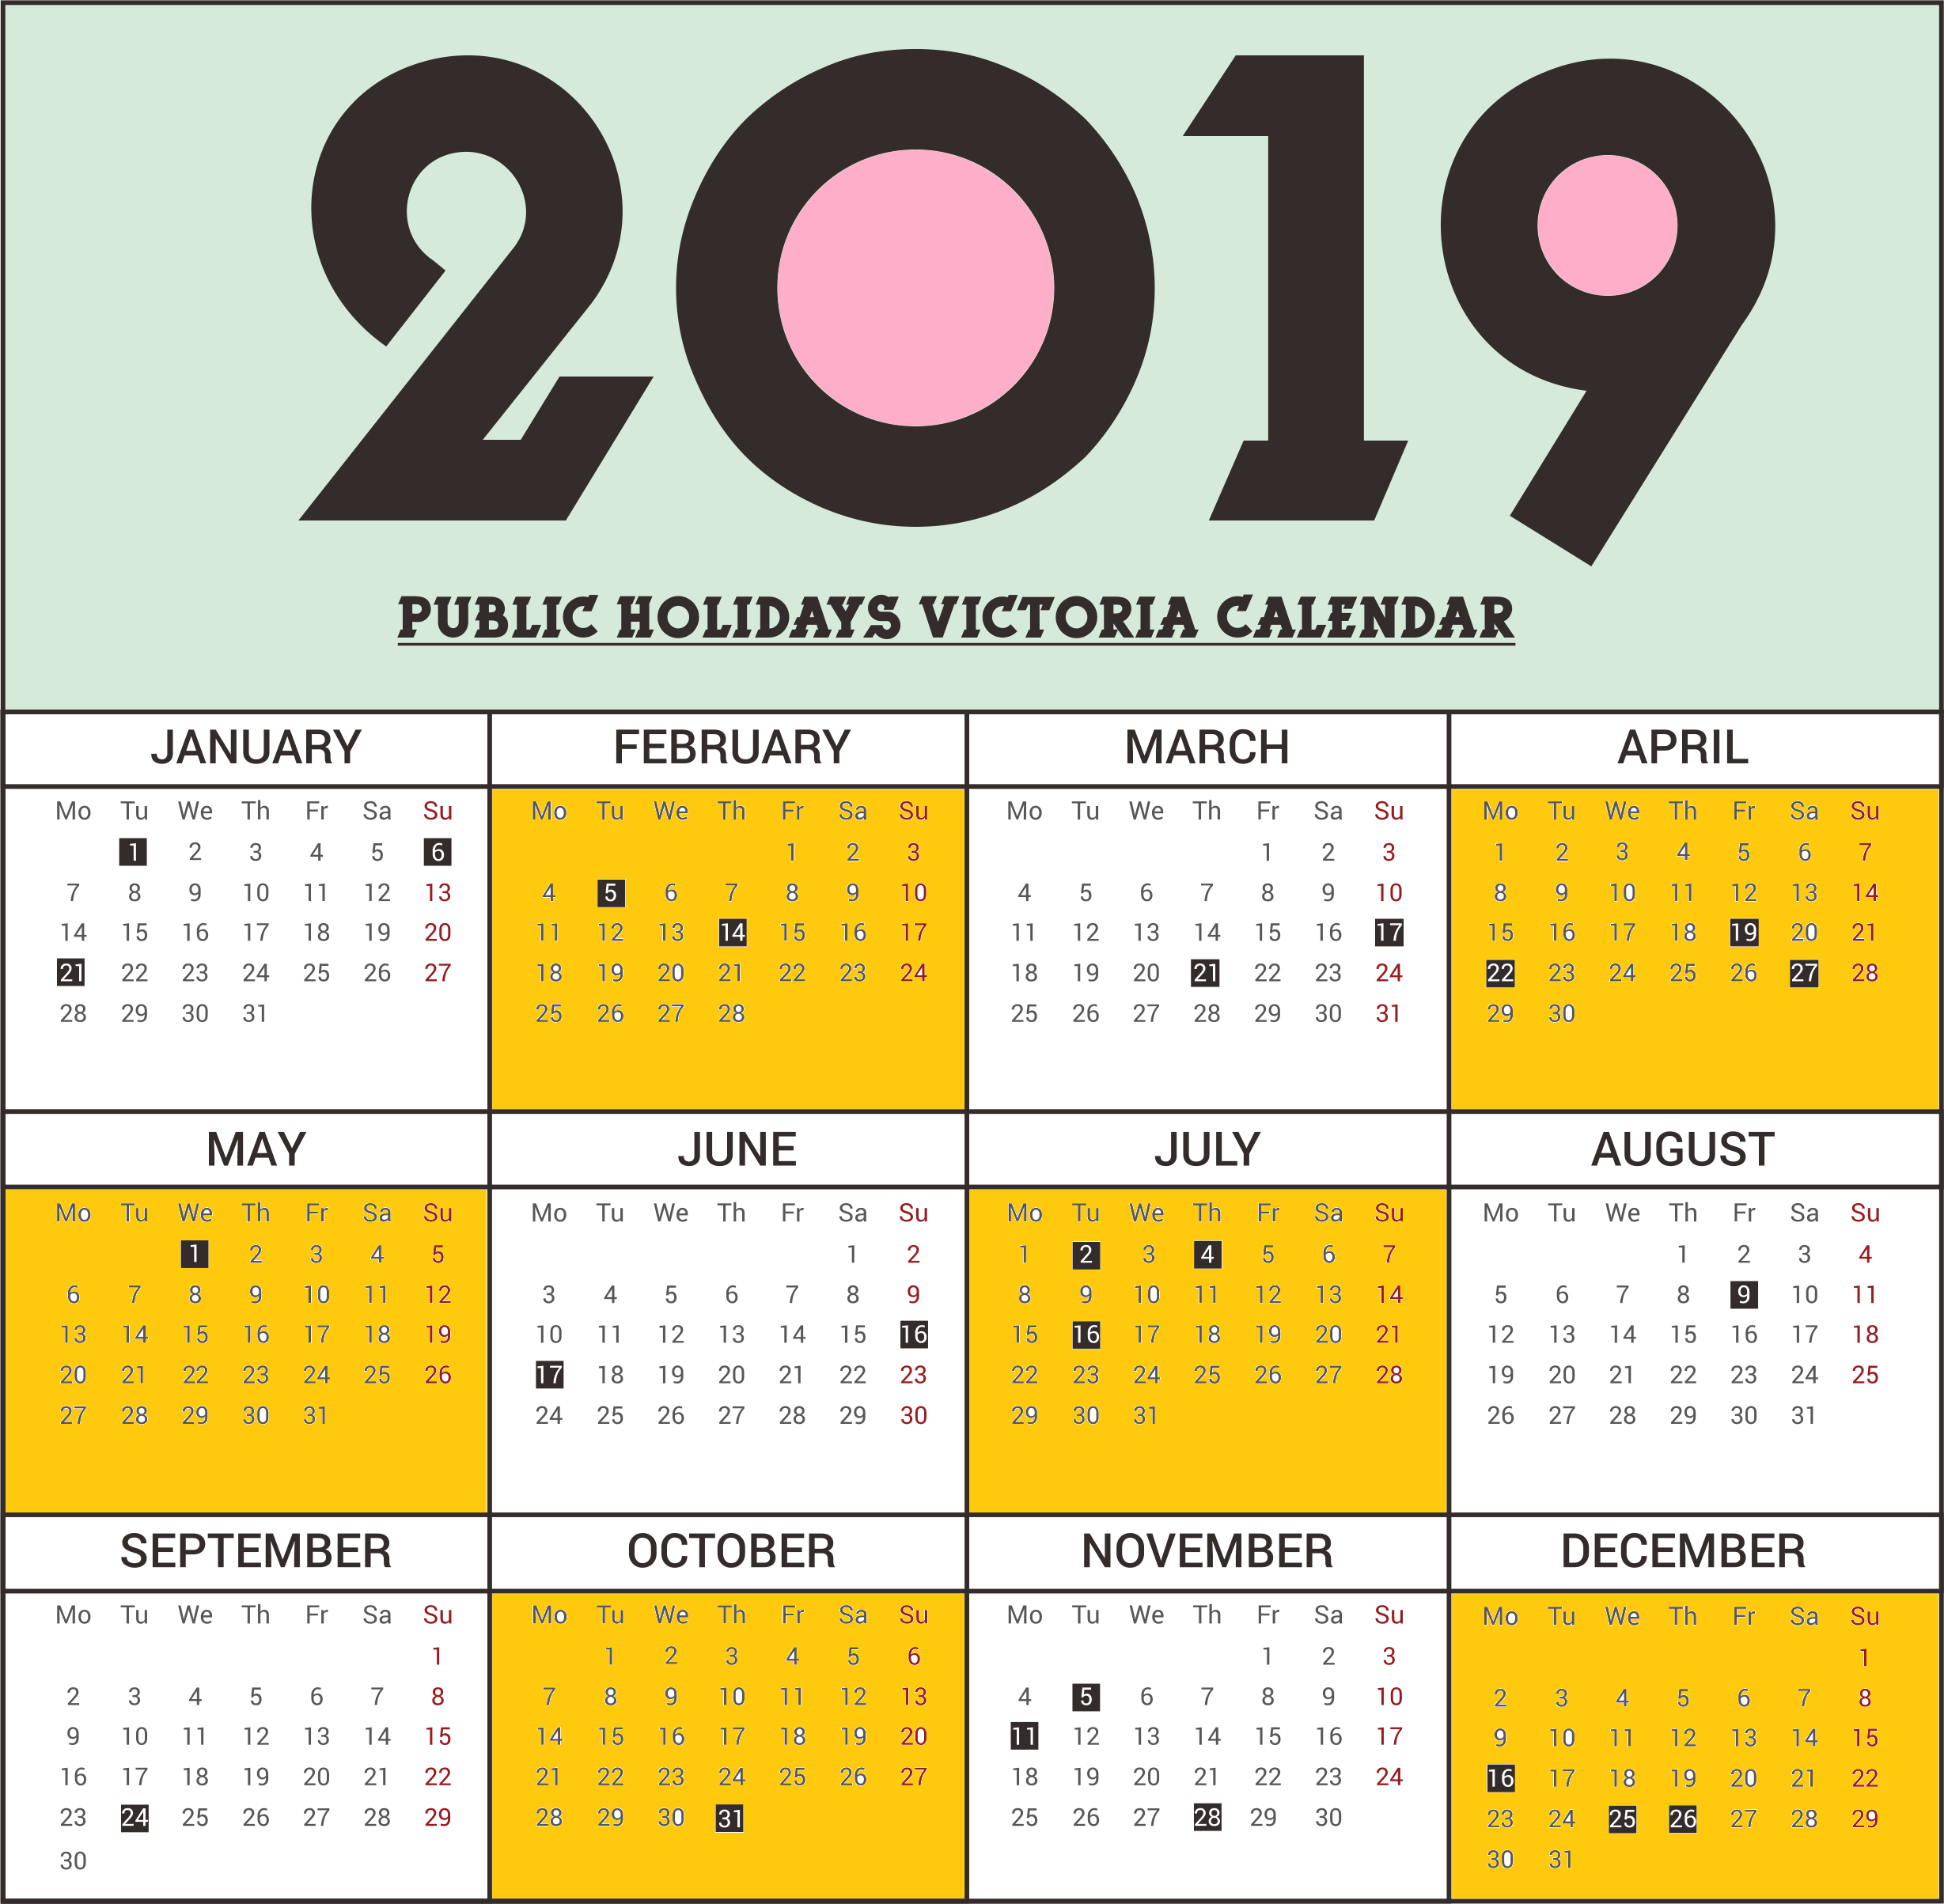 2019 School Year Calendar Victoria With Public Holidays PDF Template August 2018